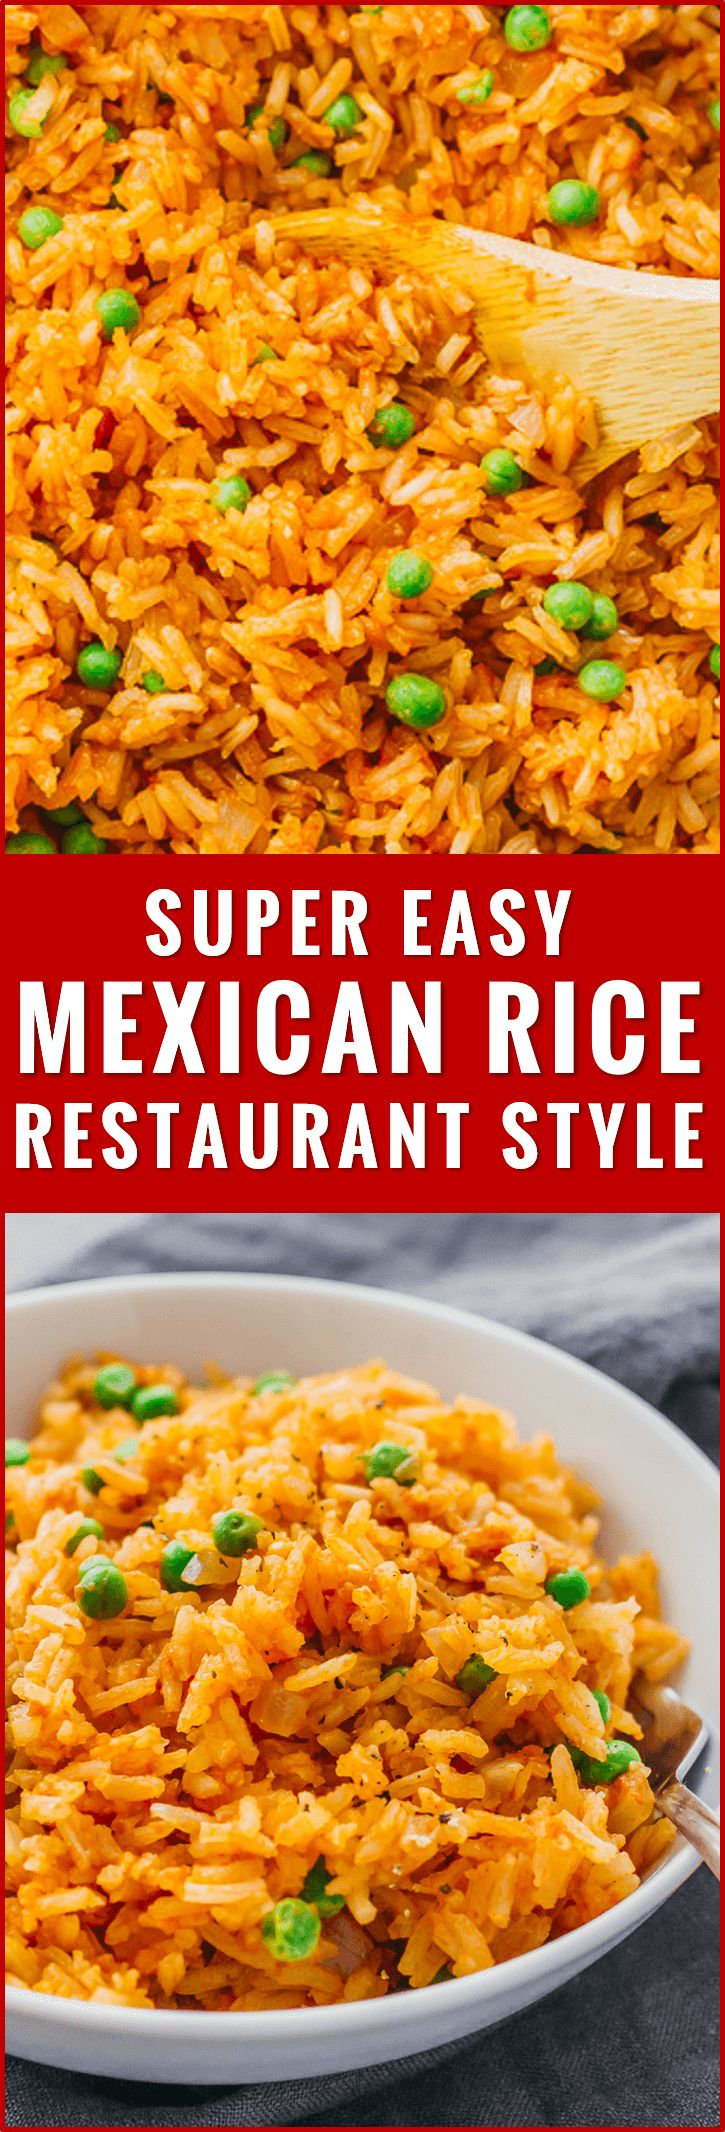 This mildly spicy Mexican rice is easily cooked using a pan on the stove, and has lime, onion, and garlic flavors. recipe, easy, authentic, restaurant style, healthy, quick, homemade, best, how to make mexican rice, for a crowd, vegetarian, with vegetables, peas, bowl, skillet, simple, oven, traditional, seasoning, white rice, tomato paste, bake, dishes, fluffy, skinny, real, spicy, meals, clean, gluten free, burrito, dinner, cilantro, leftover, with veggies, with peas, fast, for two via…